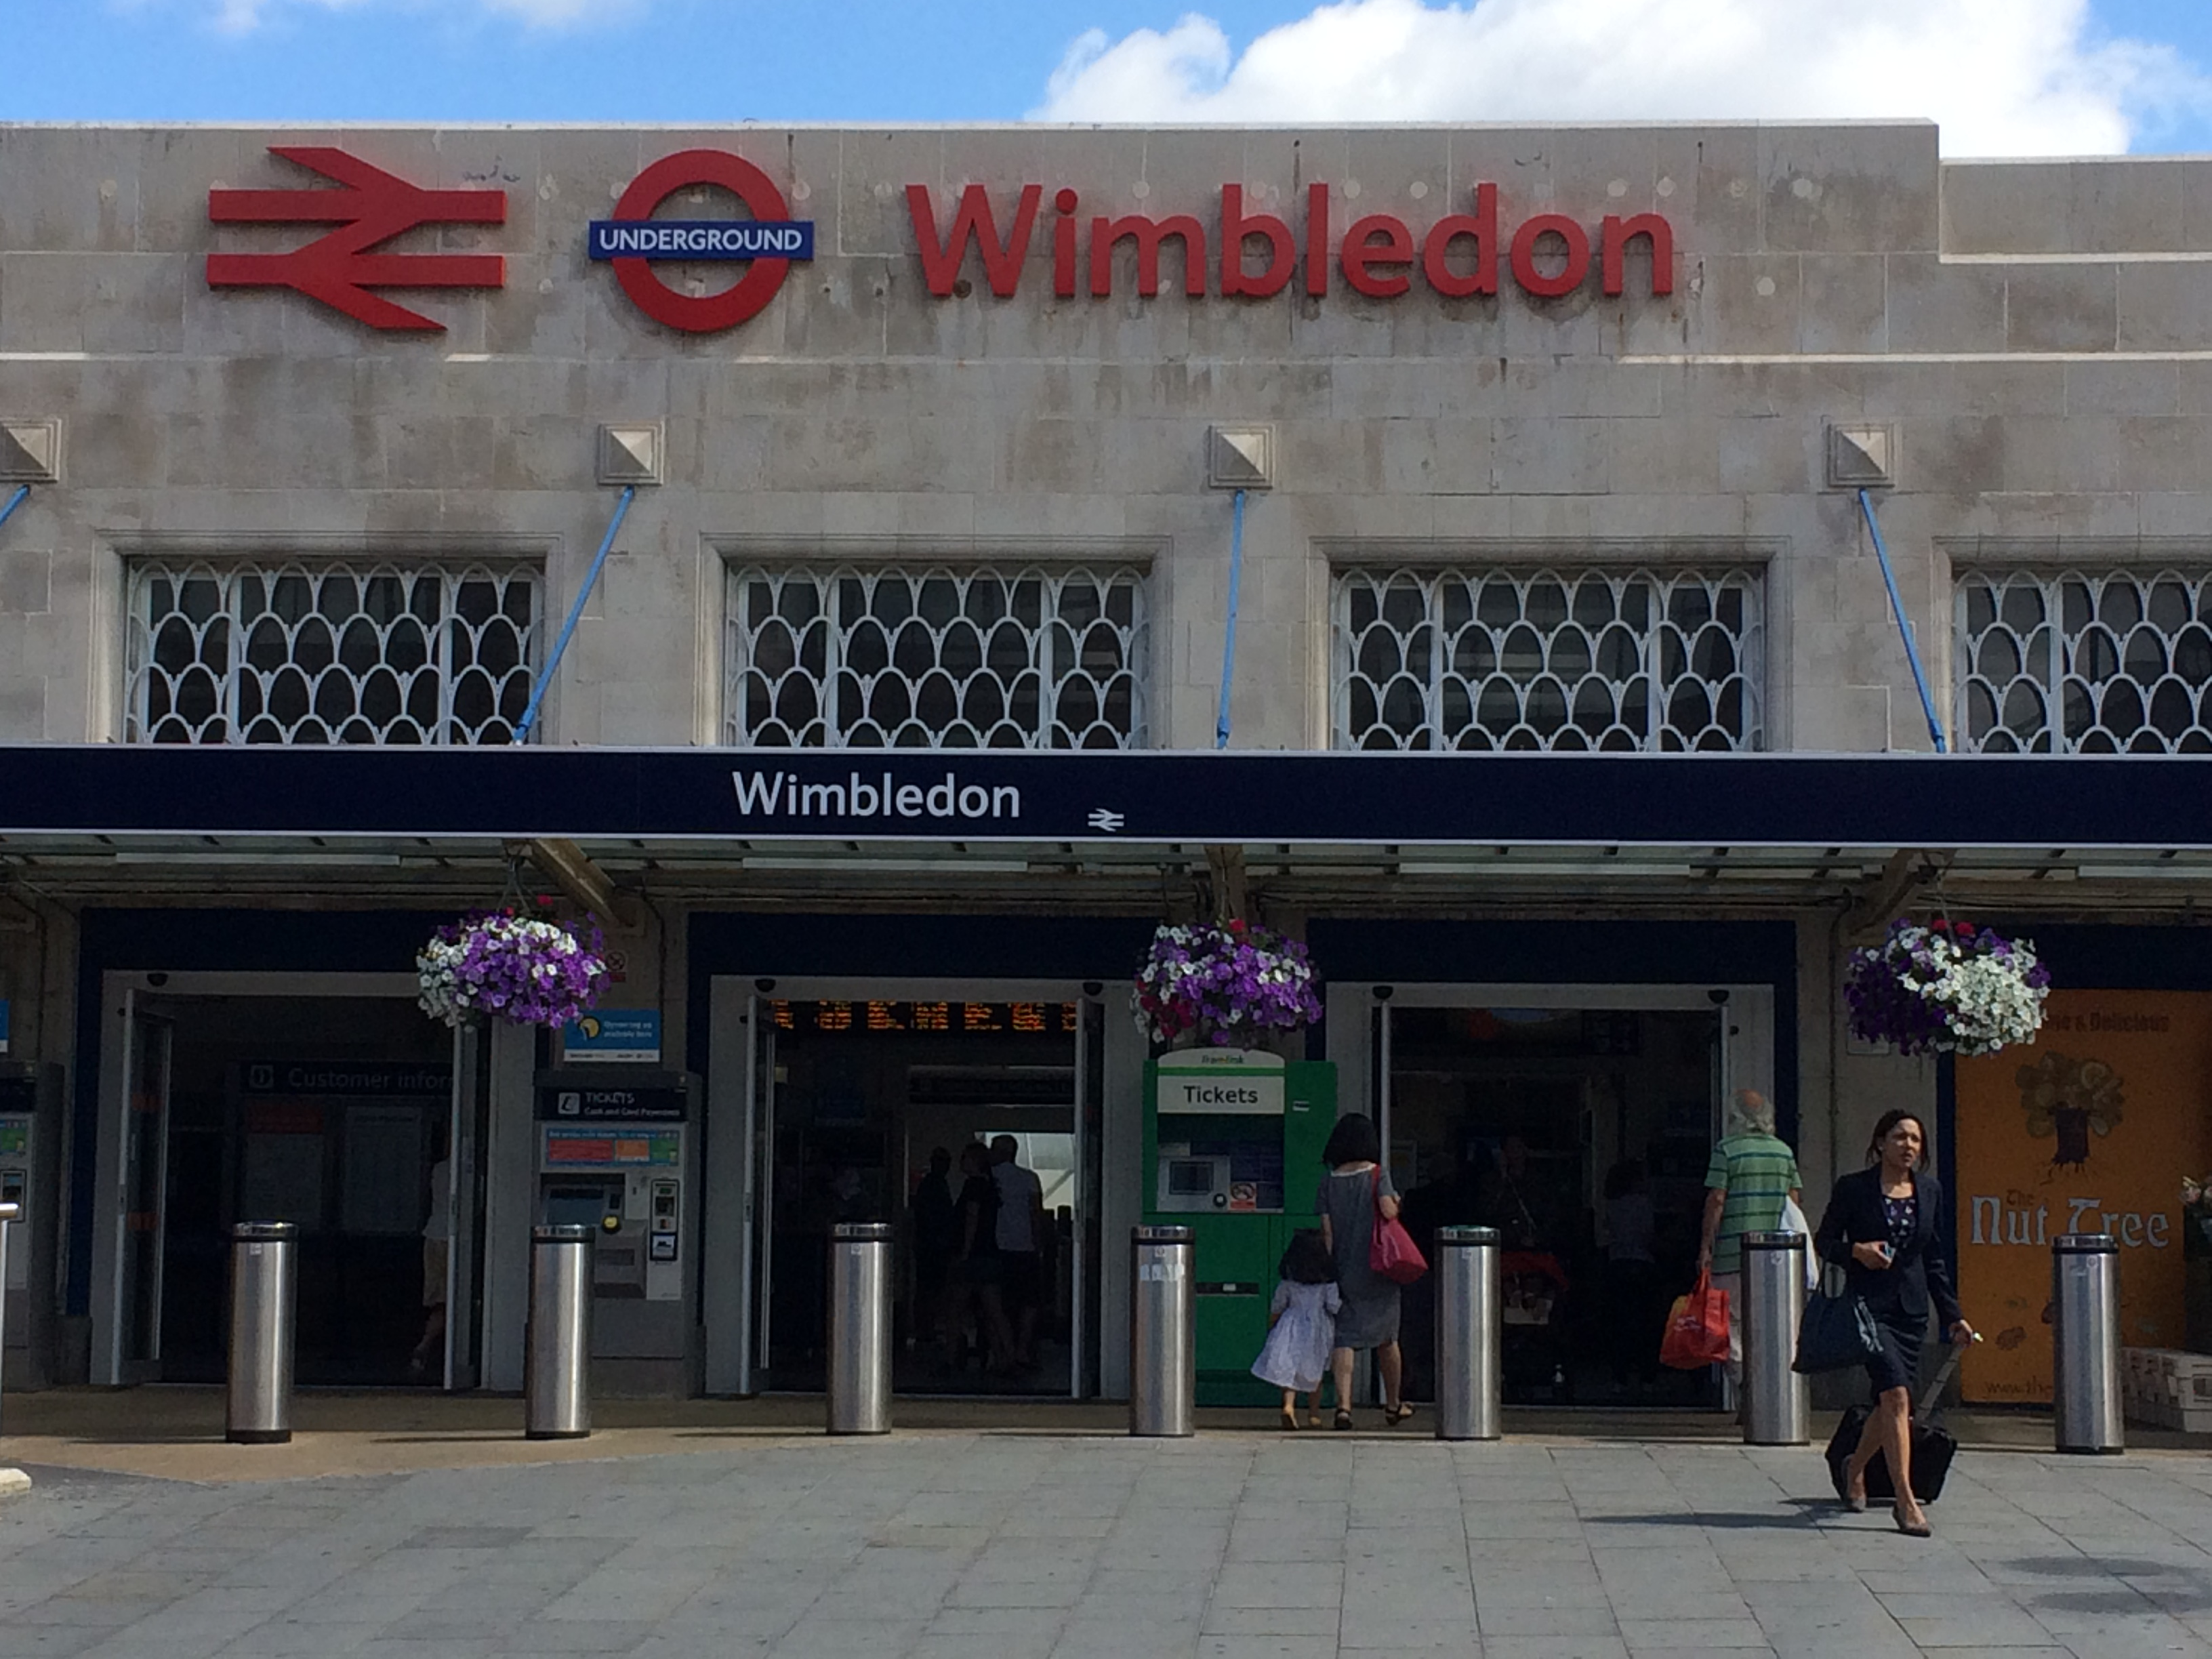 Wimbledon Train Station